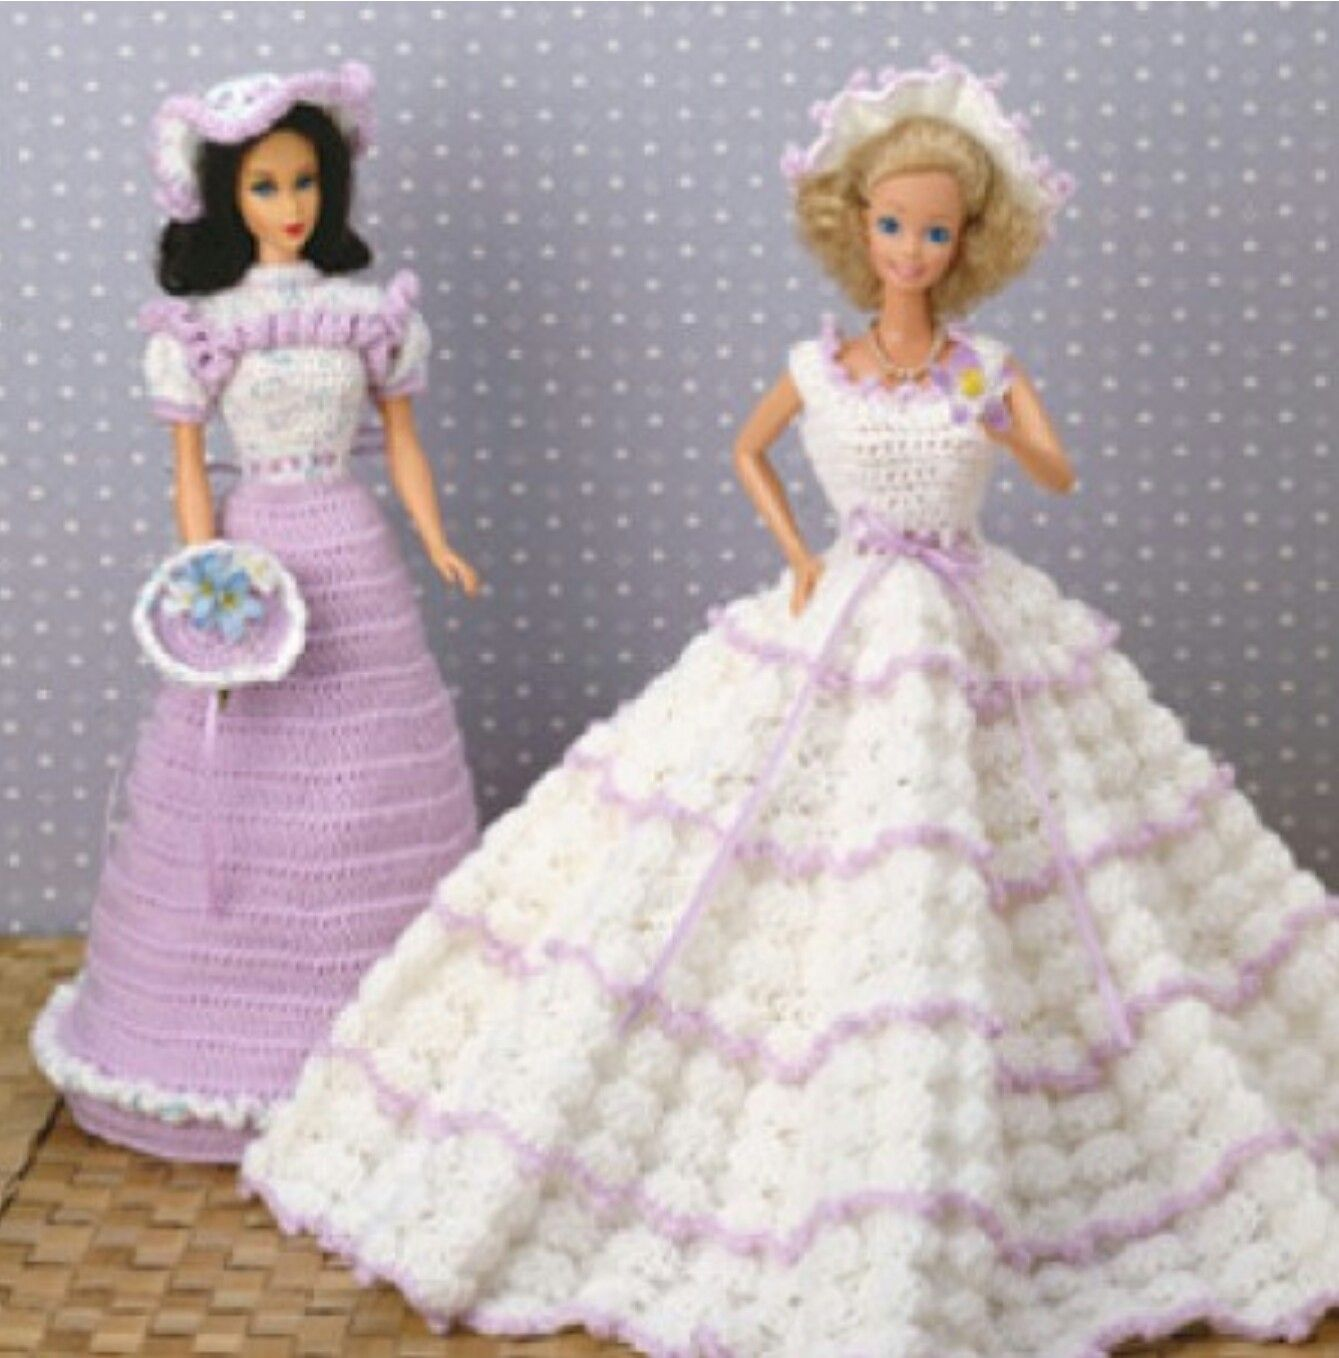 Pin von Sheri Thomason auf Barbie Wedding Crocheted | Pinterest